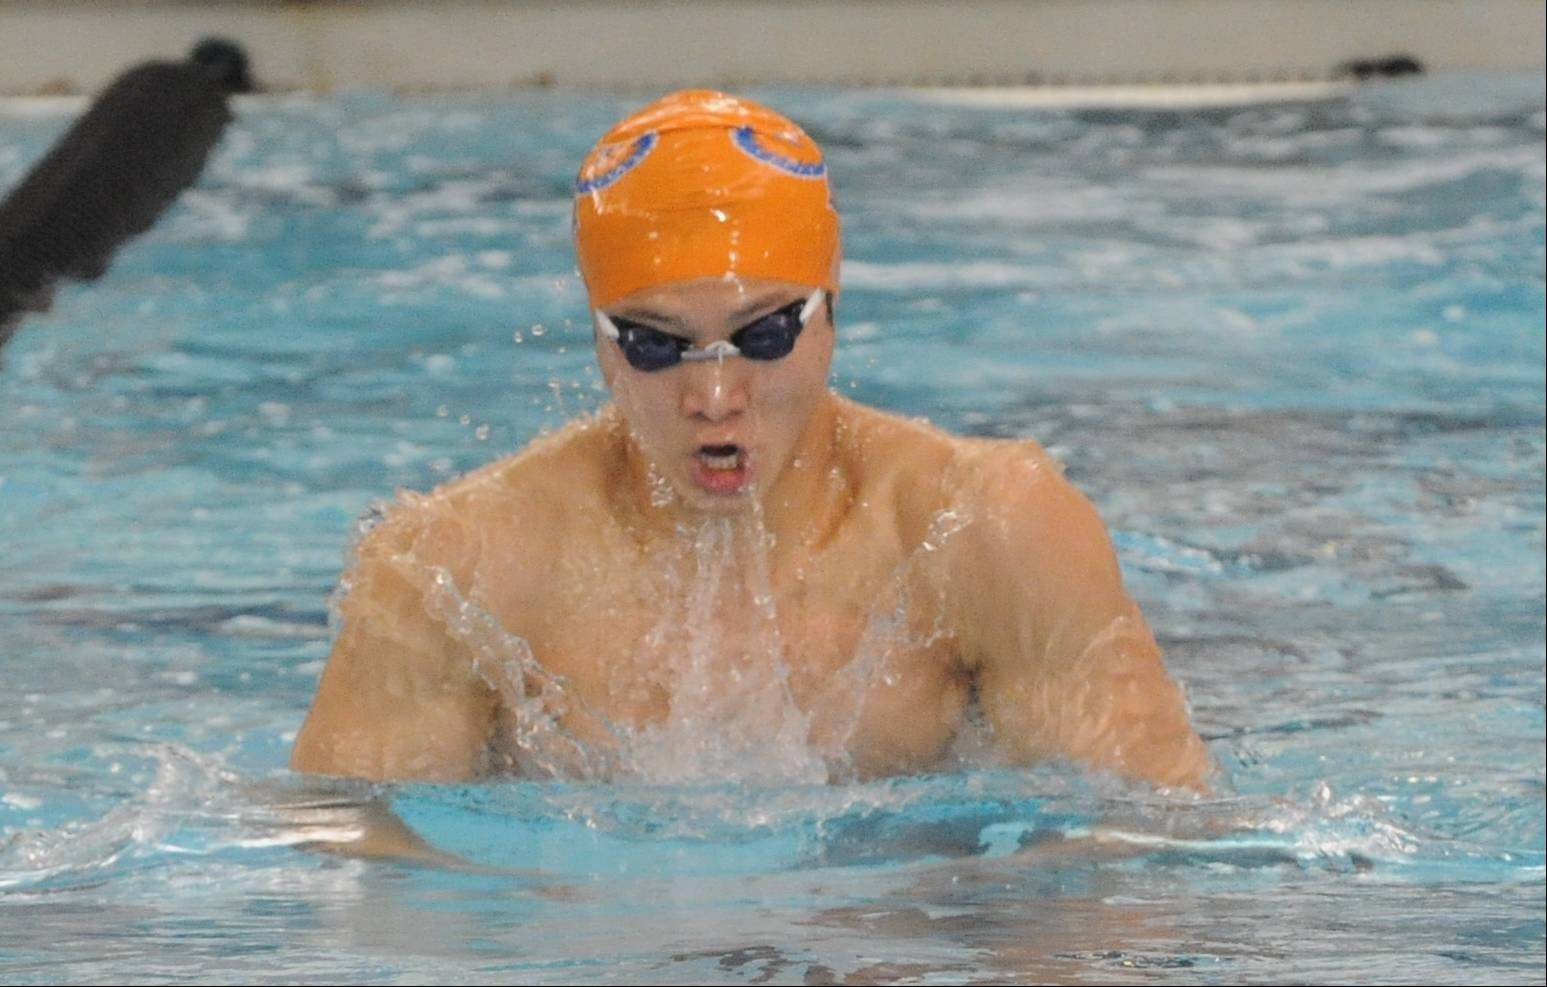 Hoffman Estates senior Sang Han was a sectional champion in the 100 breaststroke; he'll swim that race plus the 50 freestyle in Friday's state meet prelims at New Trier.